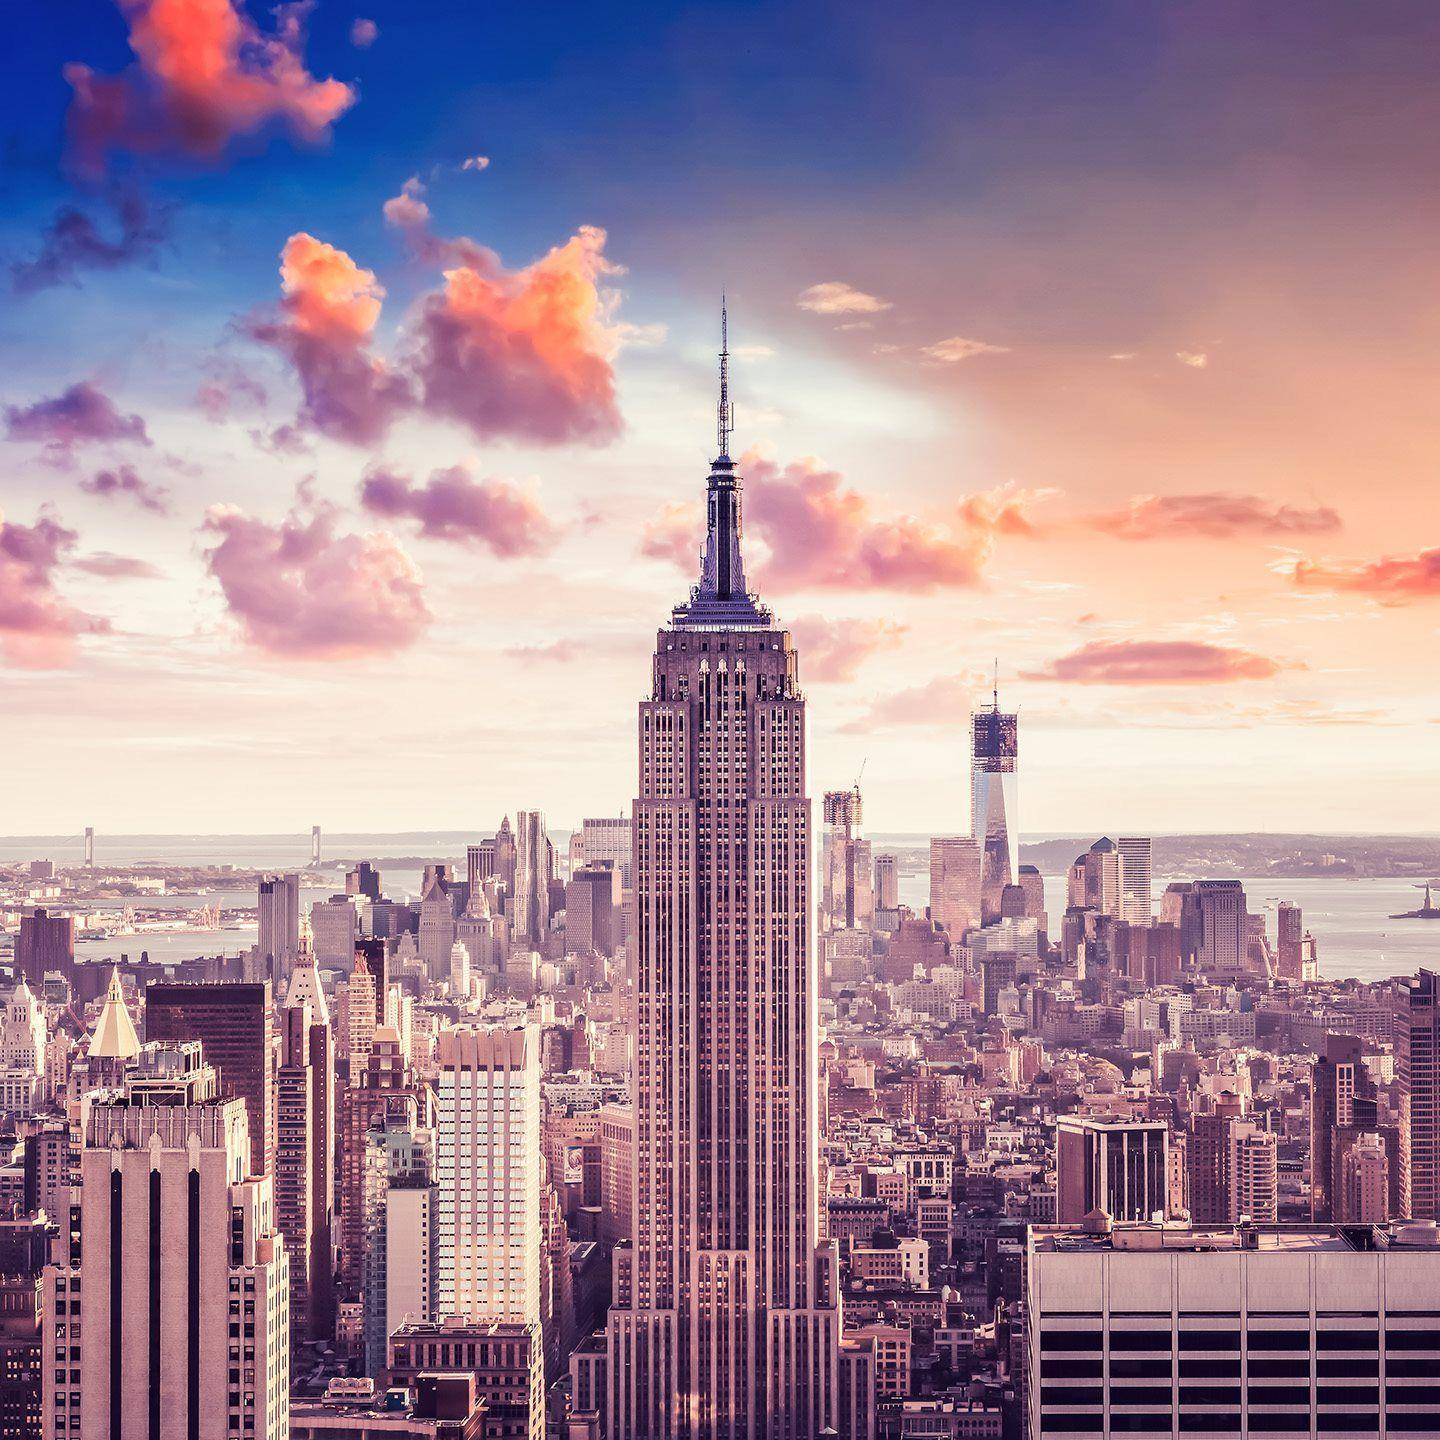 Empire State Building Wallpapers · 4K HD Desktop Backgrounds Phone